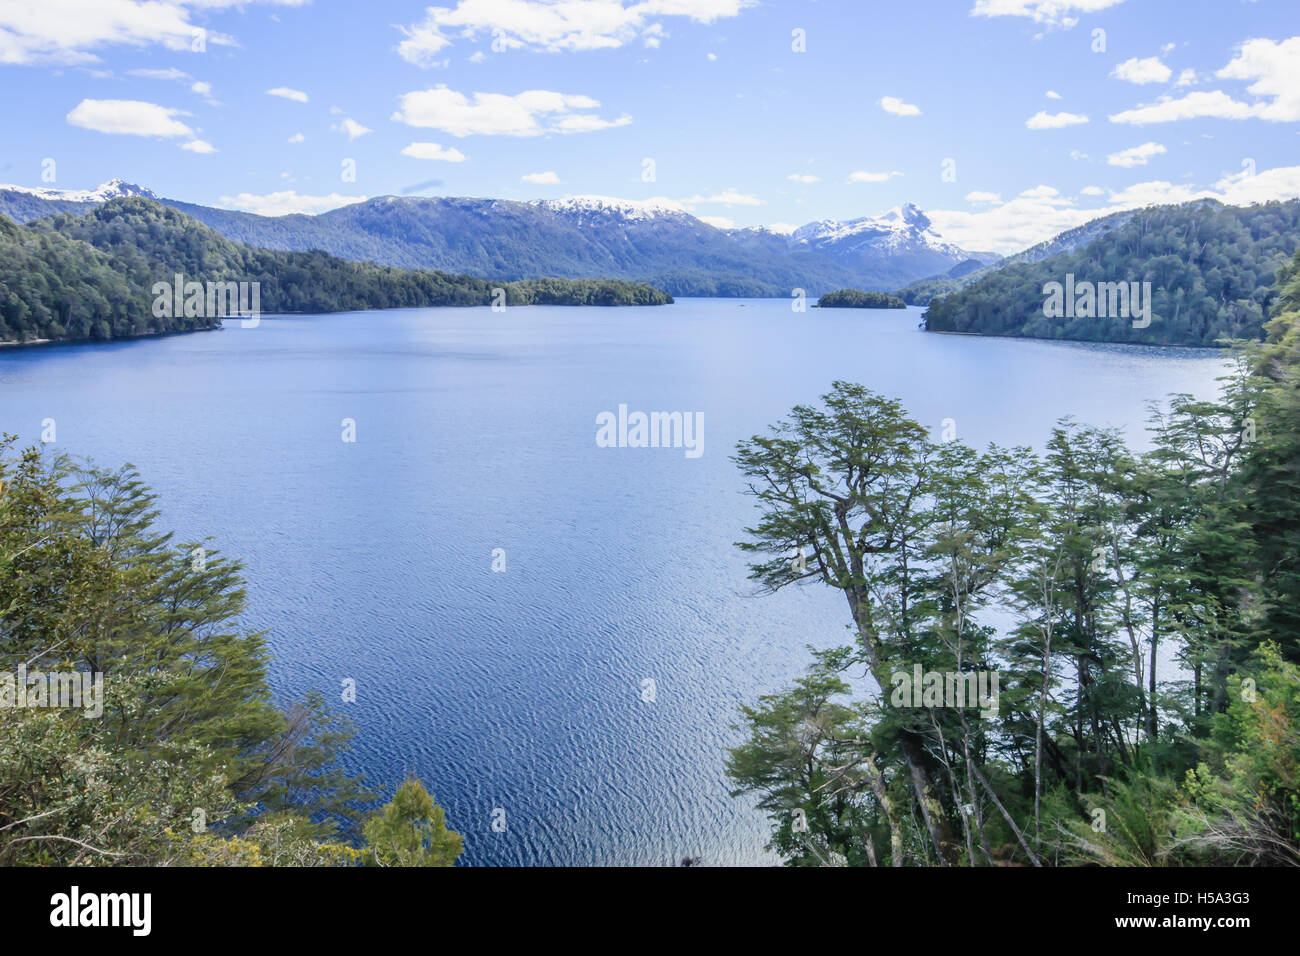 Scenic View in San Martin De Los Andes, Patagonia, Argentina - Stock Image